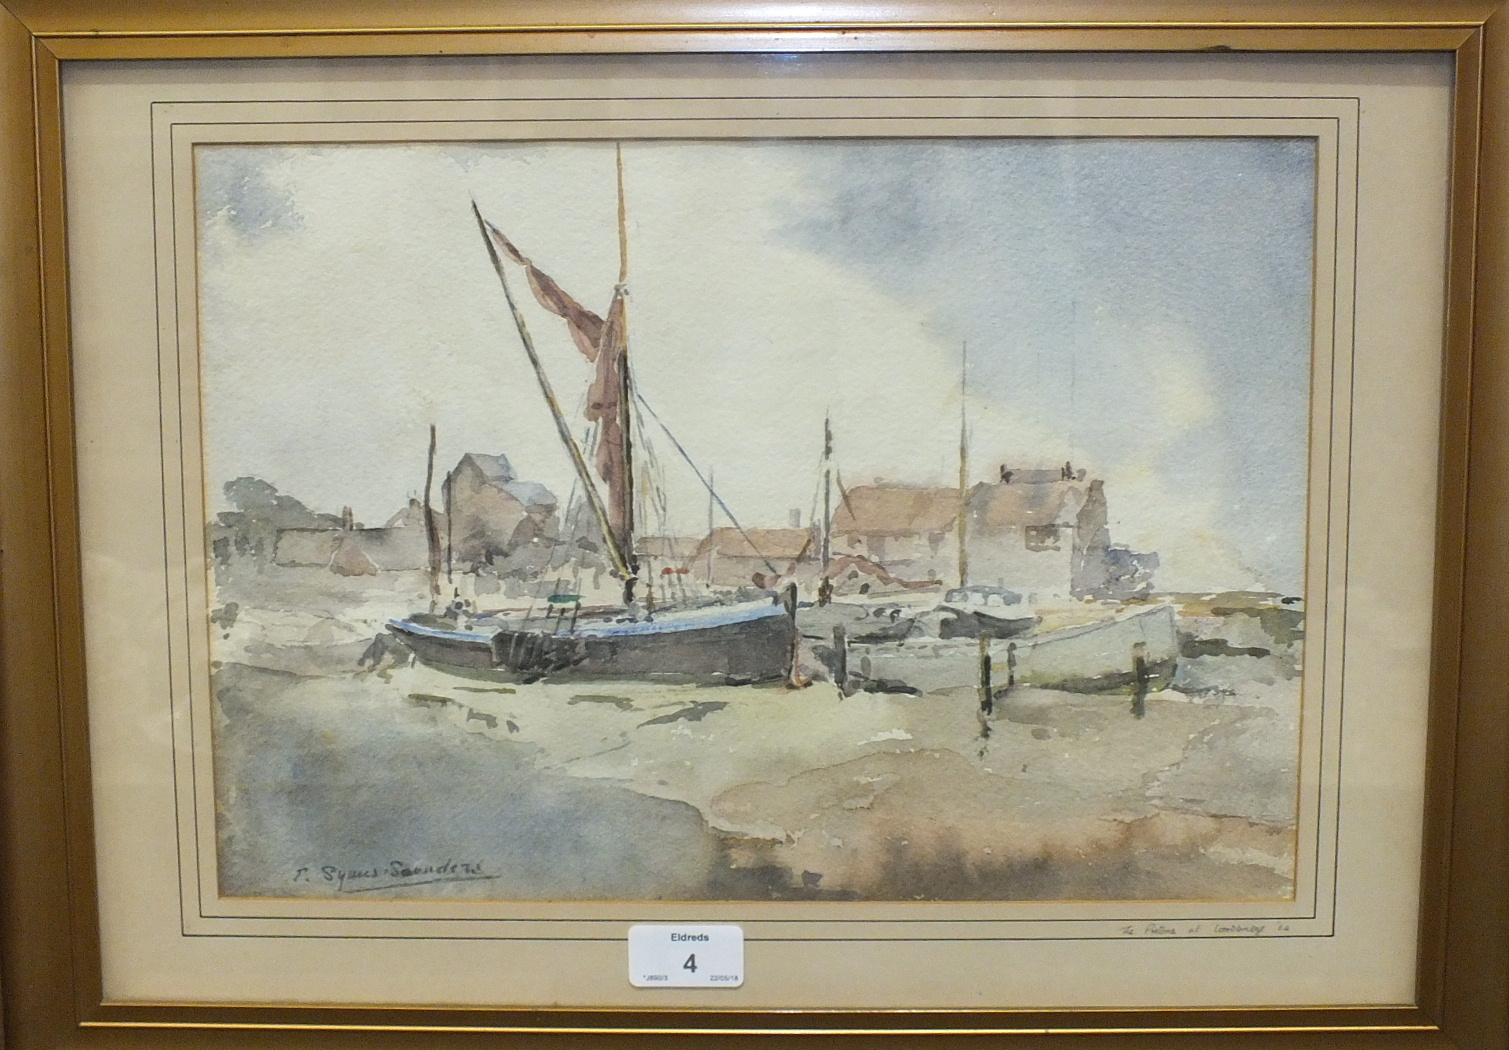 •Ernestine Symes-Saunders CABLE SHIP IN MILLBAY DOCKS Watercolour, signed, titled and dated 1960 - Image 2 of 3